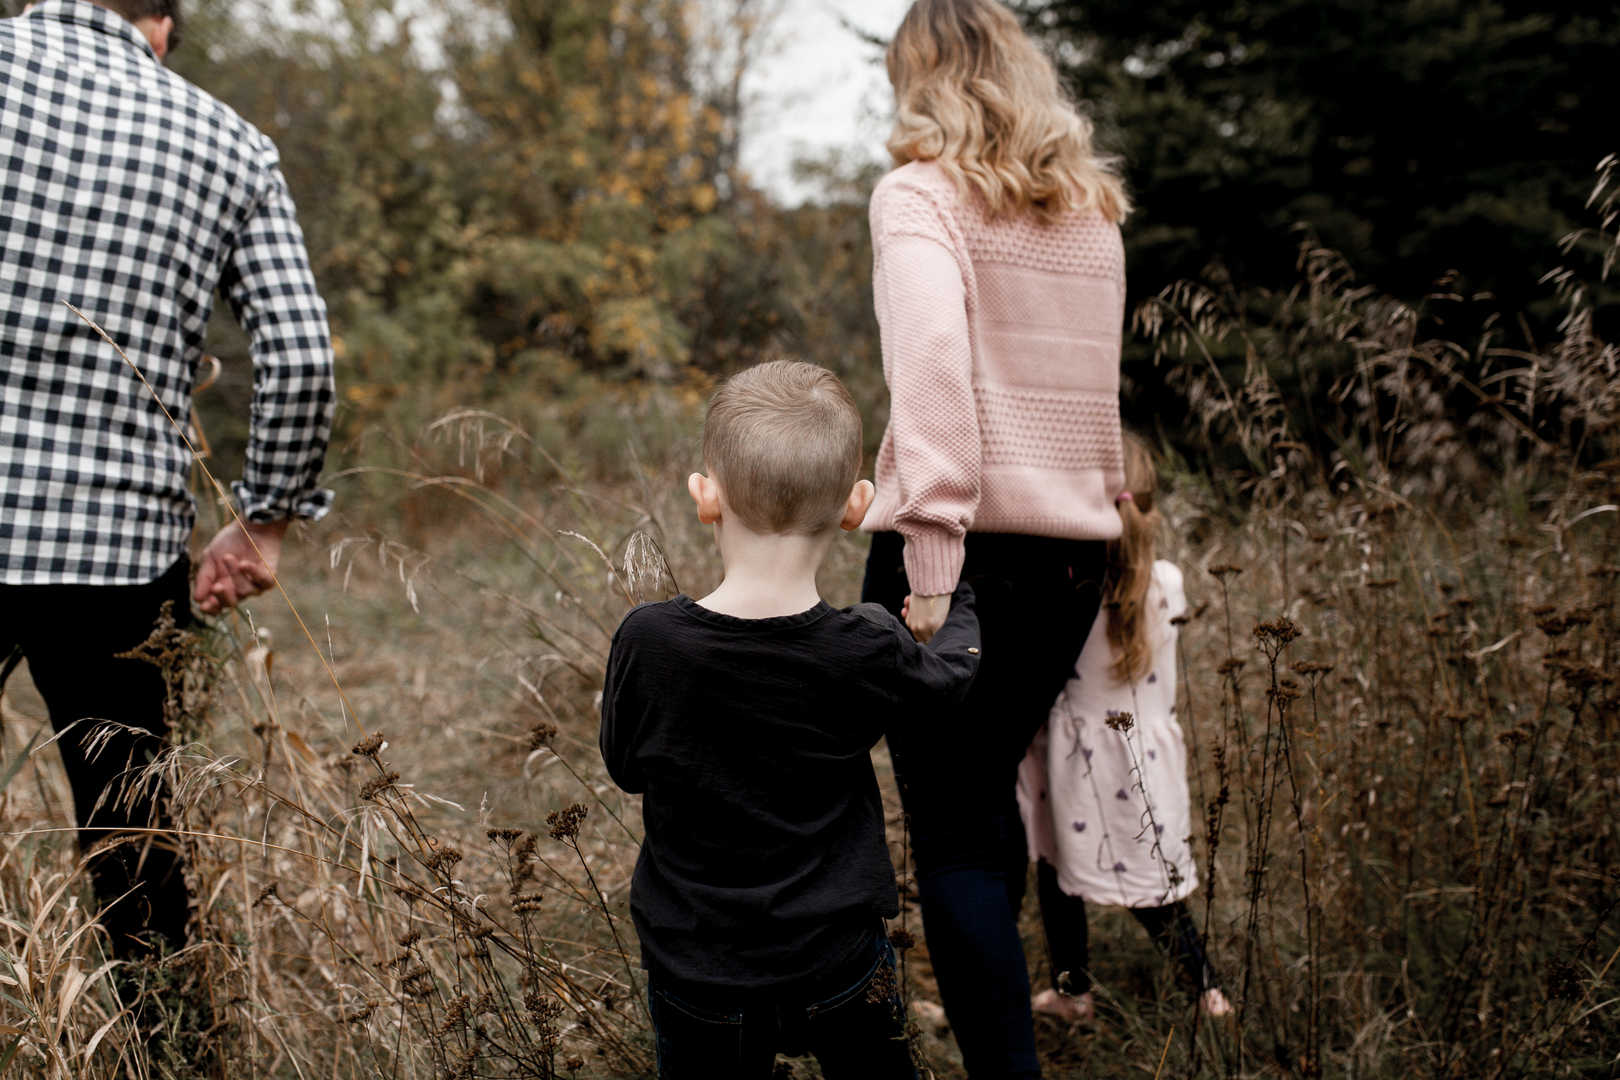 Peterborough Family Photographer, Ontario Photographer, Family Photography, Photography, Peterborough Ontario, Erin Caitlin Photography